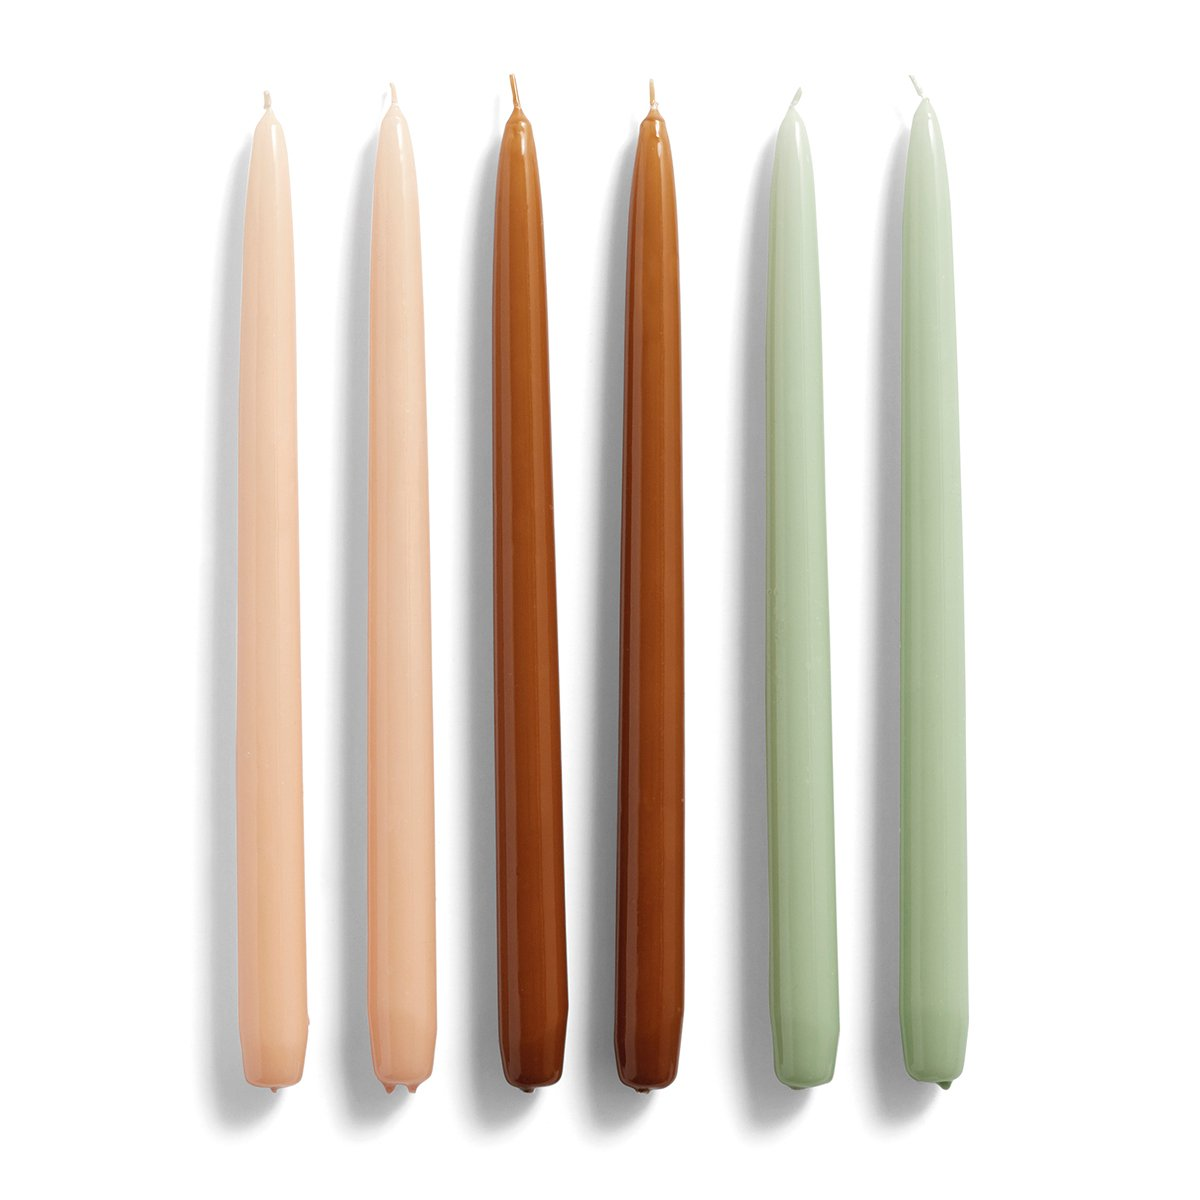 Image of HAY Candle Kaars Conical - Peach / Caramel / Mint